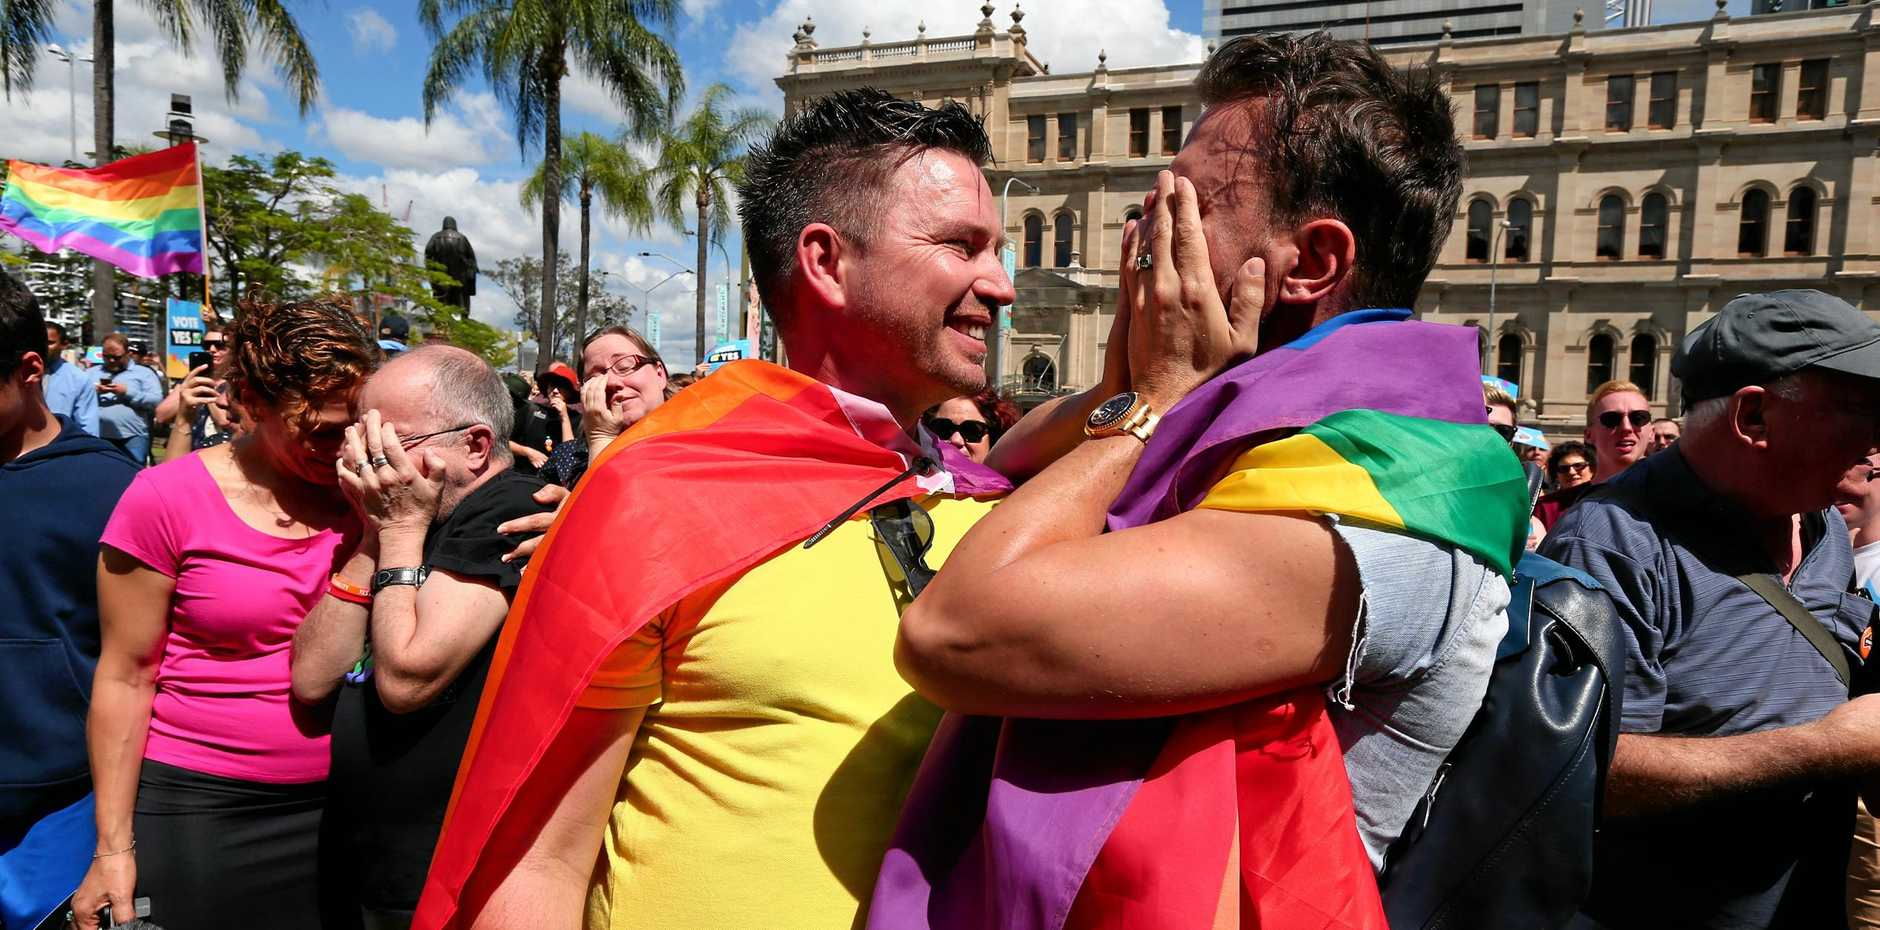 Scott D'Amico (left) and Brad Harker celebrate after the same sex marriage vote result announcement in Queens Park, Brisbane Australia, November 15, 2017. Australians have given same-sex marriage their approval with a 61.6 per cent 'yes' vote in a voluntary survey. (AAP Image/David Clark) NO ARCHIVING